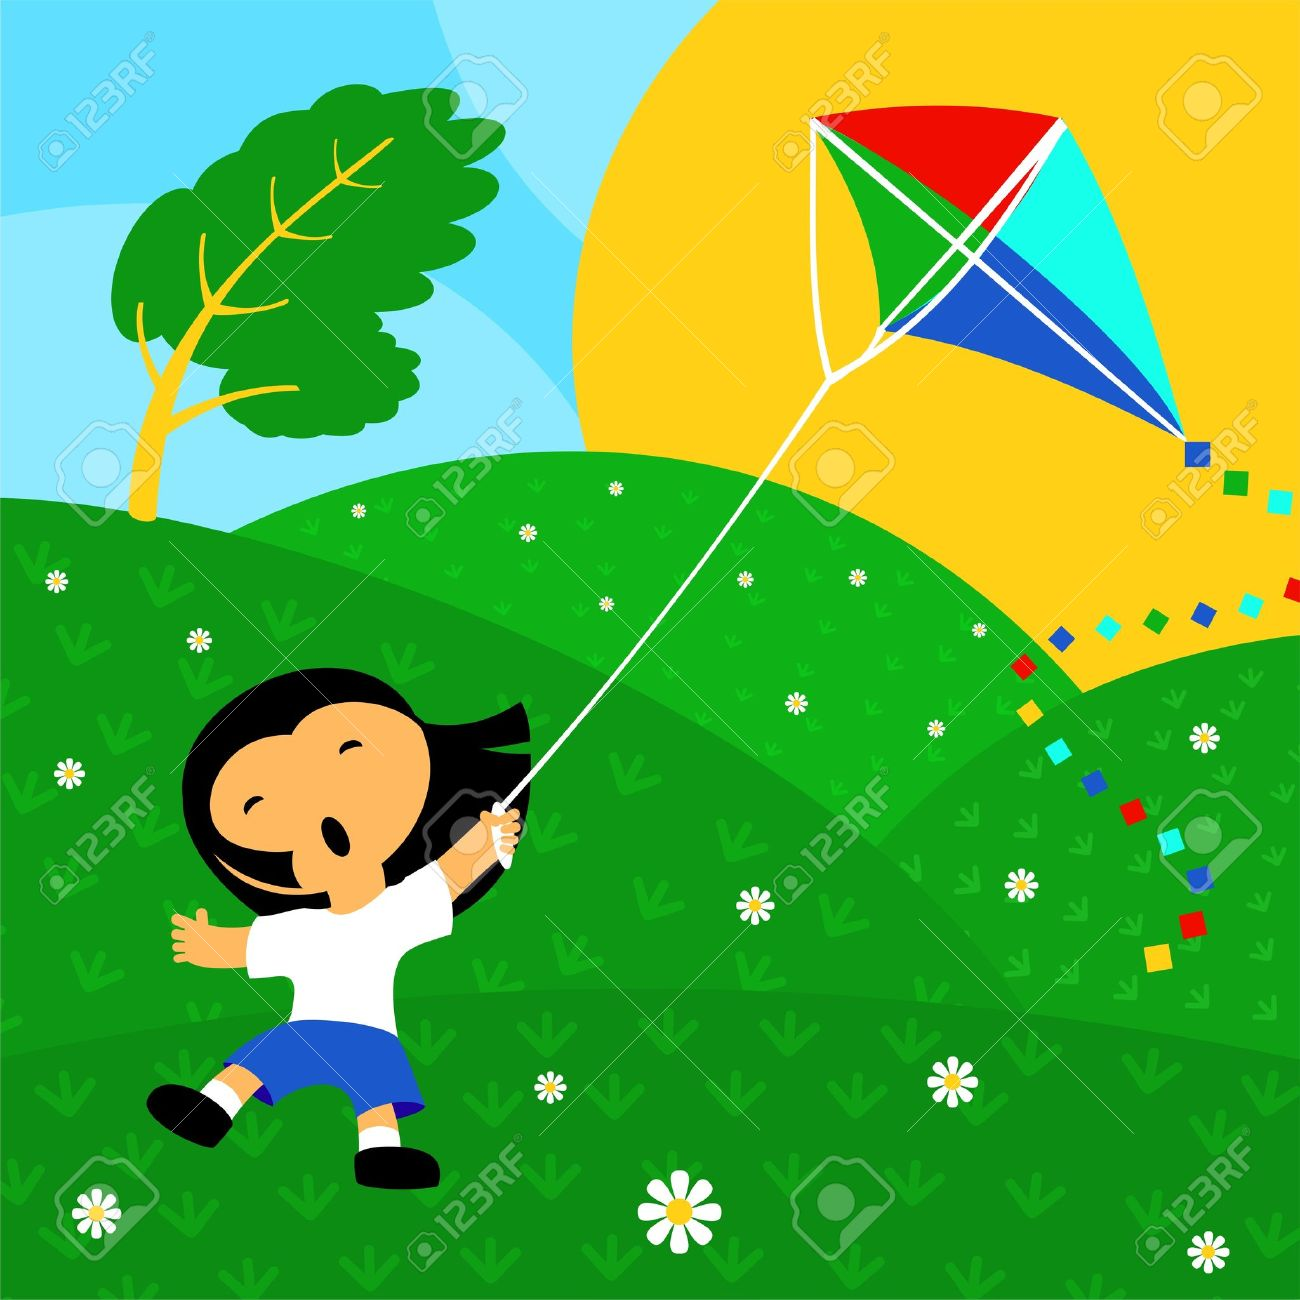 814 Windy free clipart.